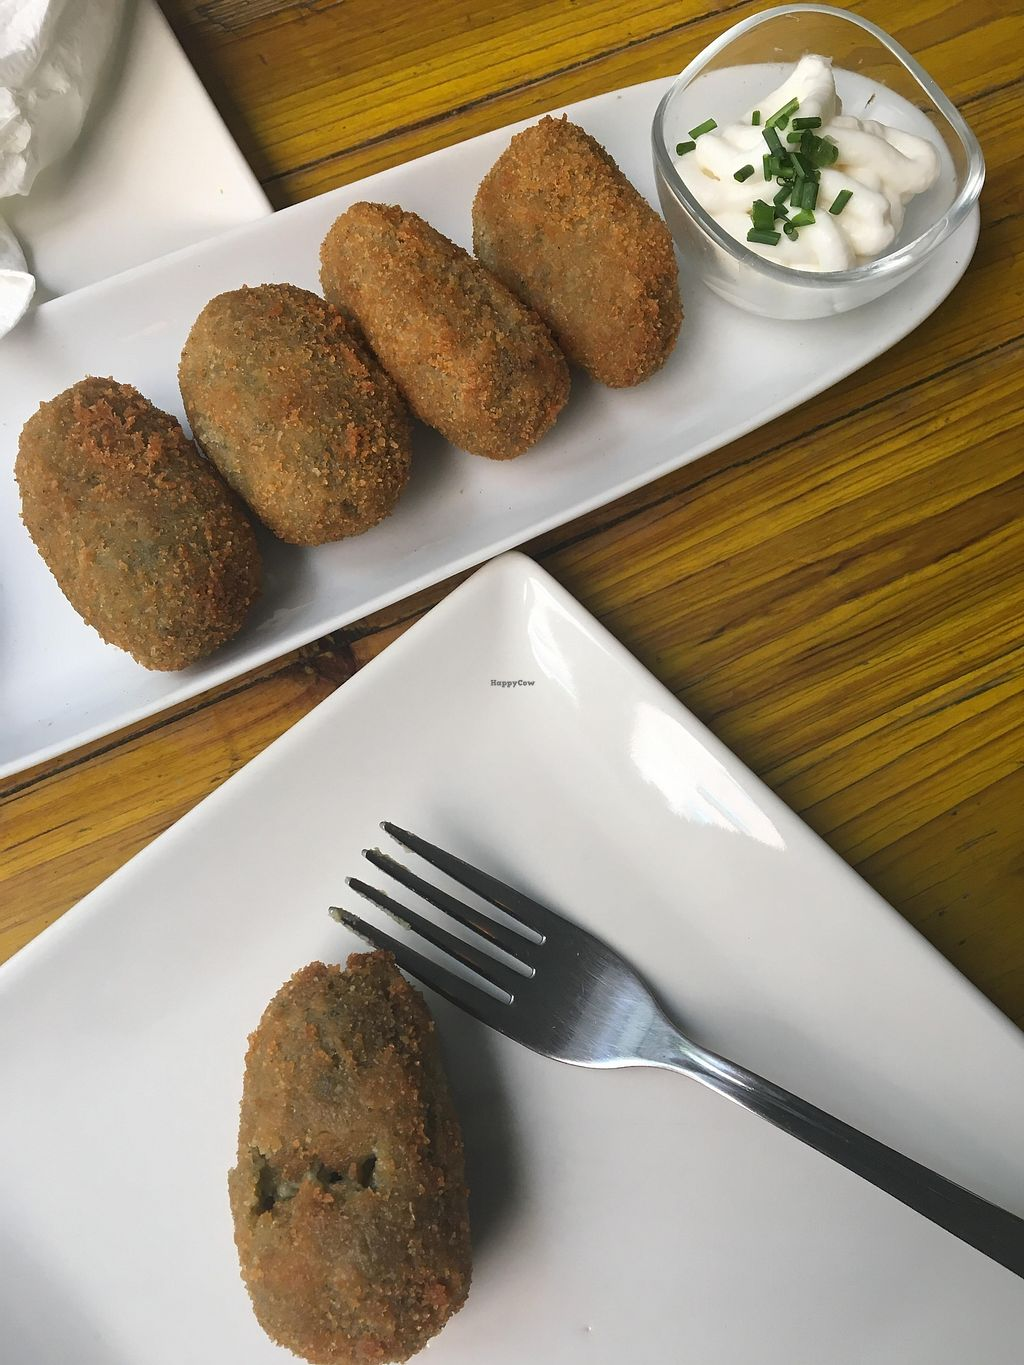 """Photo of Pura Vida Vegan Bar  by <a href=""""/members/profile/sian_ractliffe"""">sian_ractliffe</a> <br/>Delicious croquettes - 6 units for 6.95 <br/> March 13, 2018  - <a href='/contact/abuse/image/75544/370251'>Report</a>"""